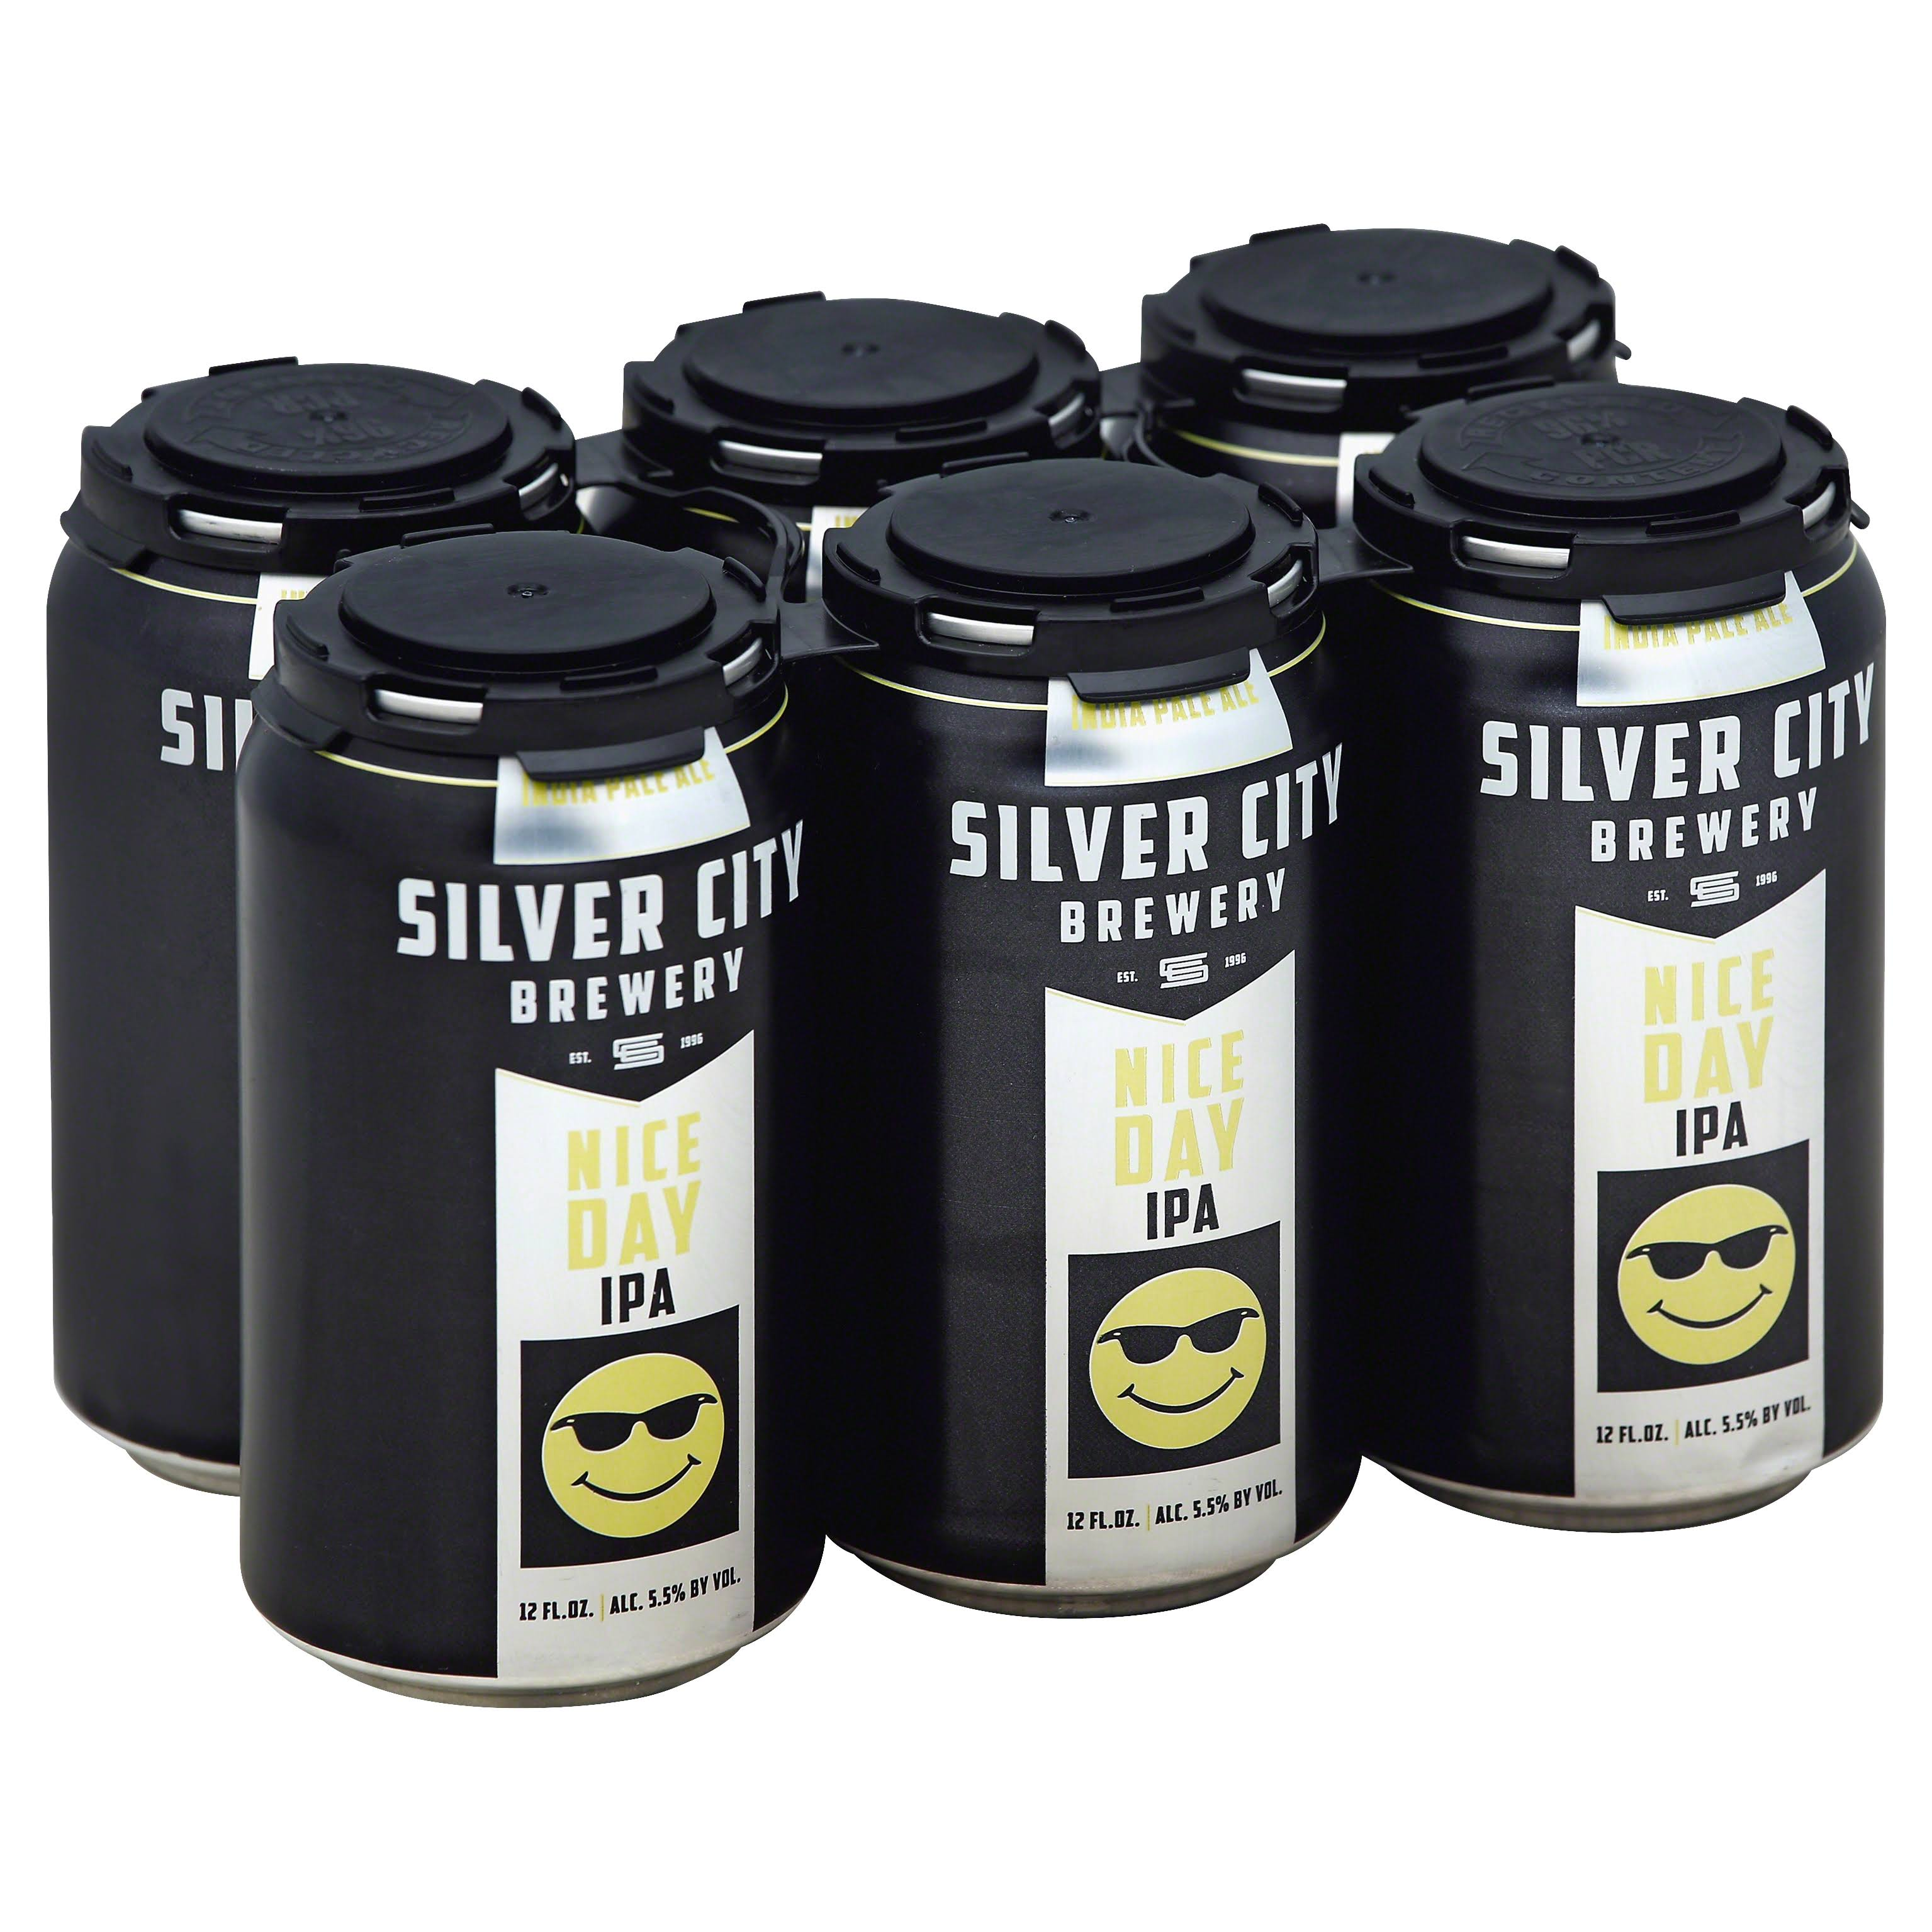 Silver City Beer, India Pale Ale, Nice Day IPA - 6 pack, 12 fl oz cans